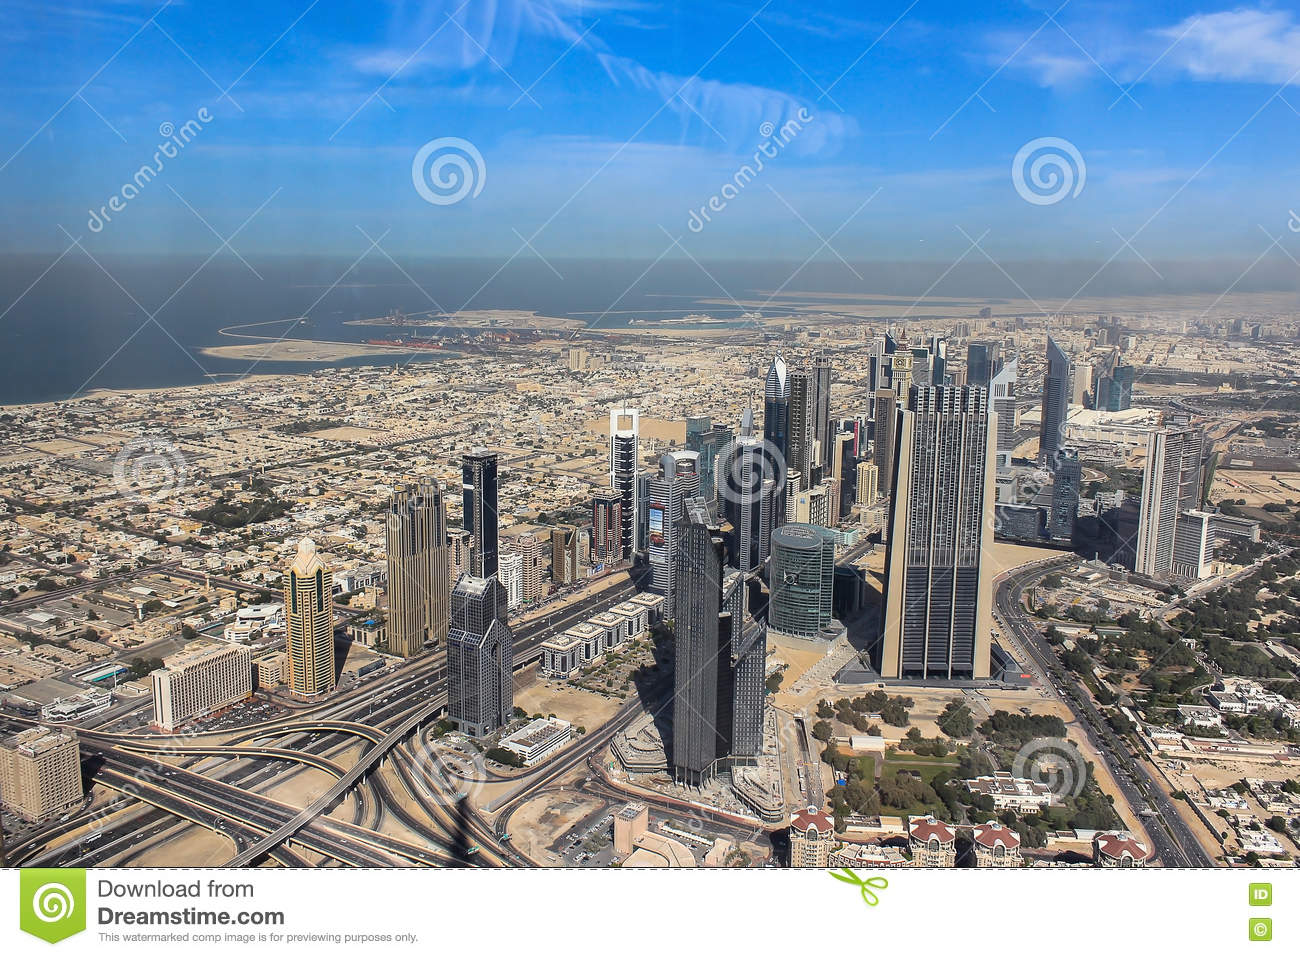 dubai city images download